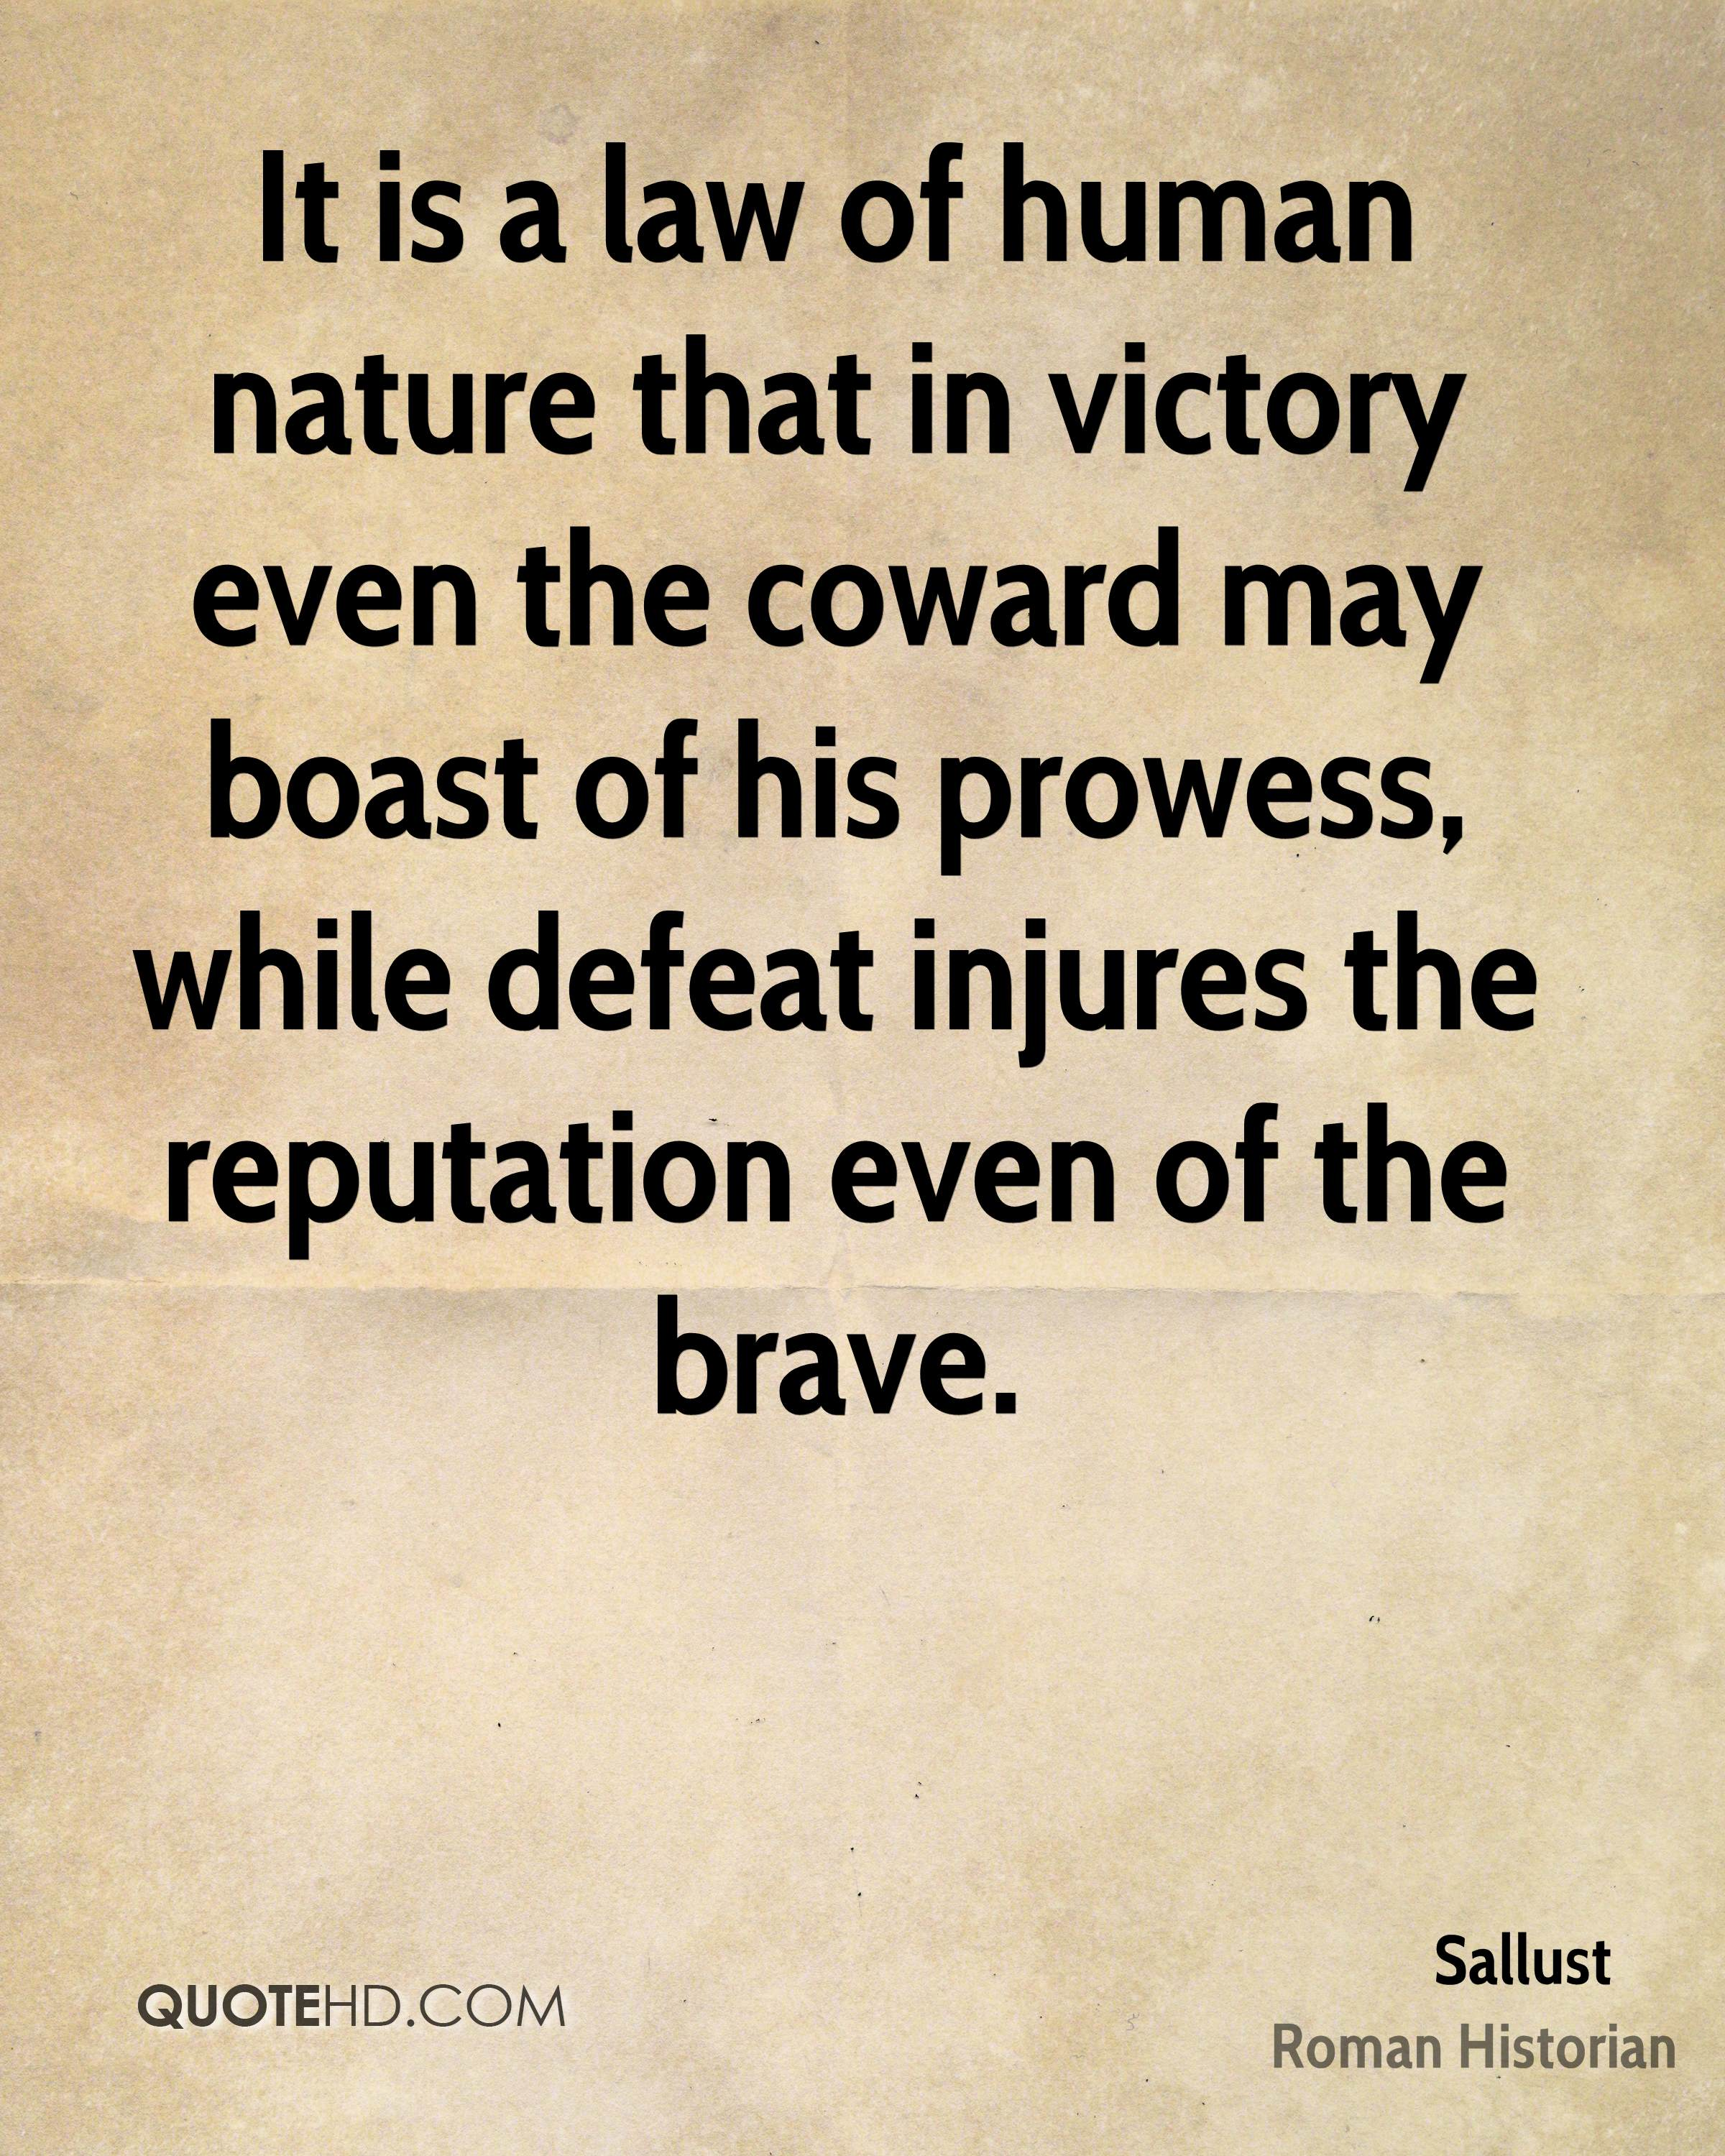 sallust nature quotes quotehd it is a law of human nature that in victory even the coward boast of